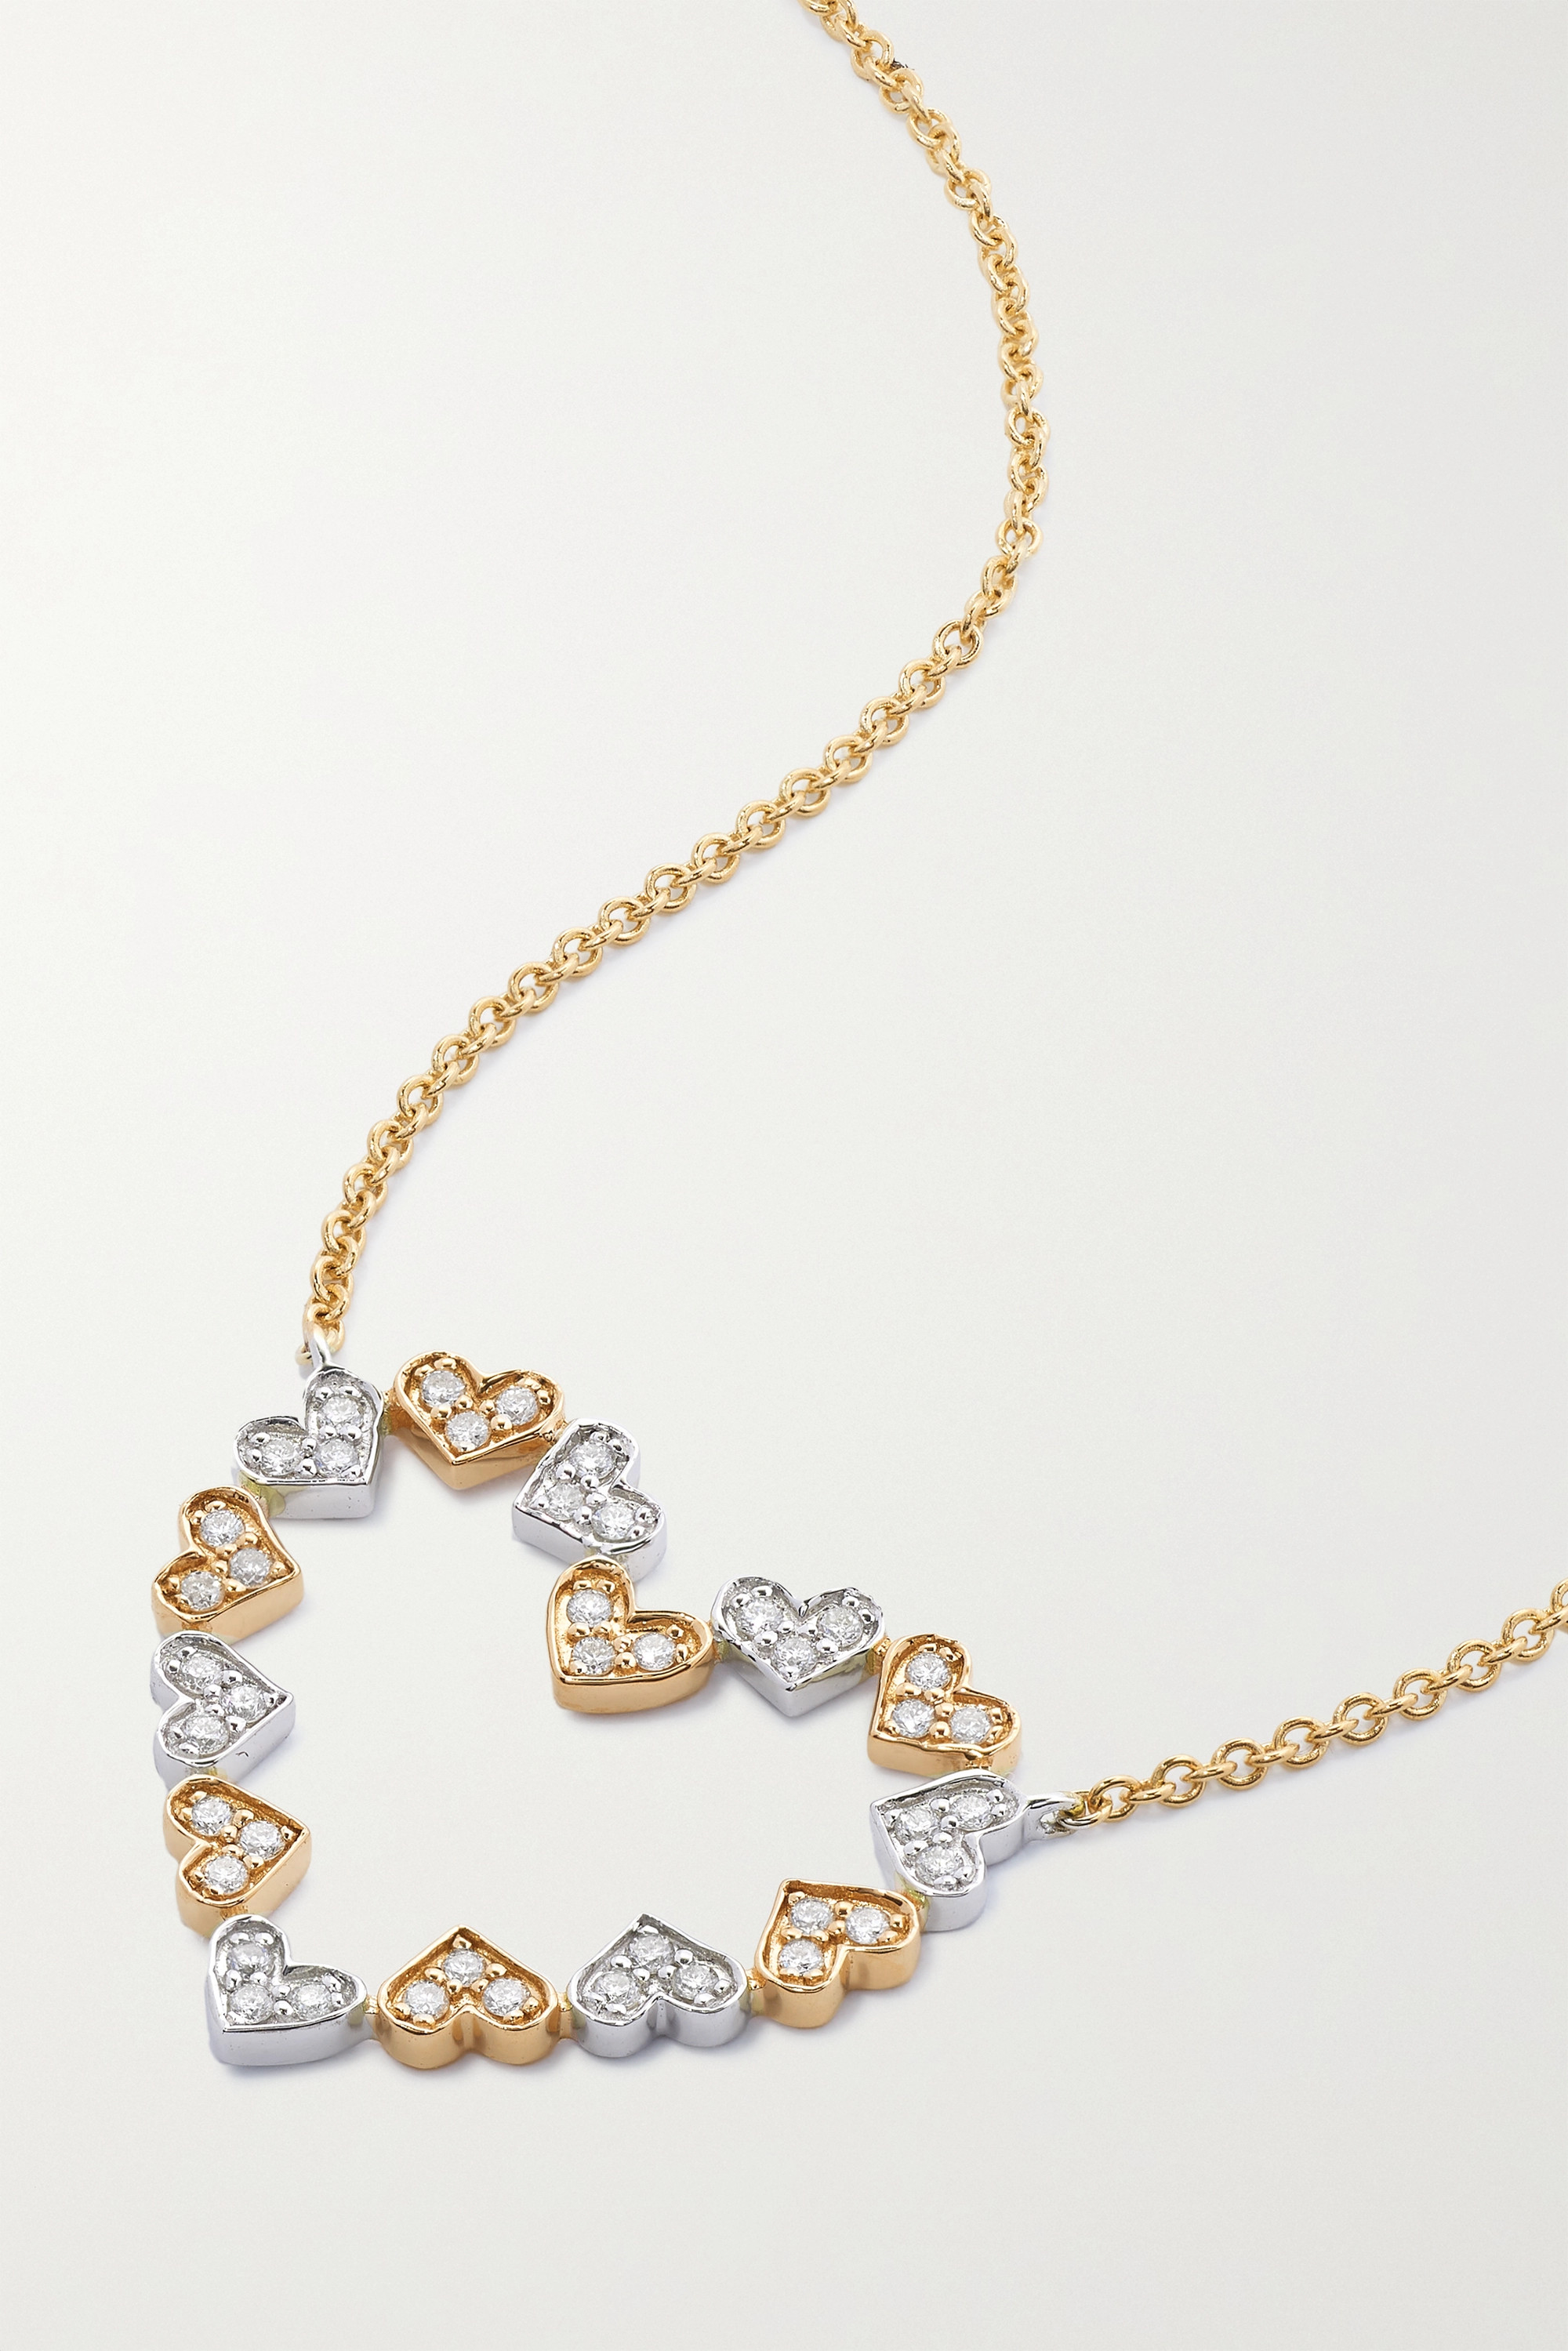 Sydney Evan Tiny Heart 14-karat yellow and white gold diamond necklace